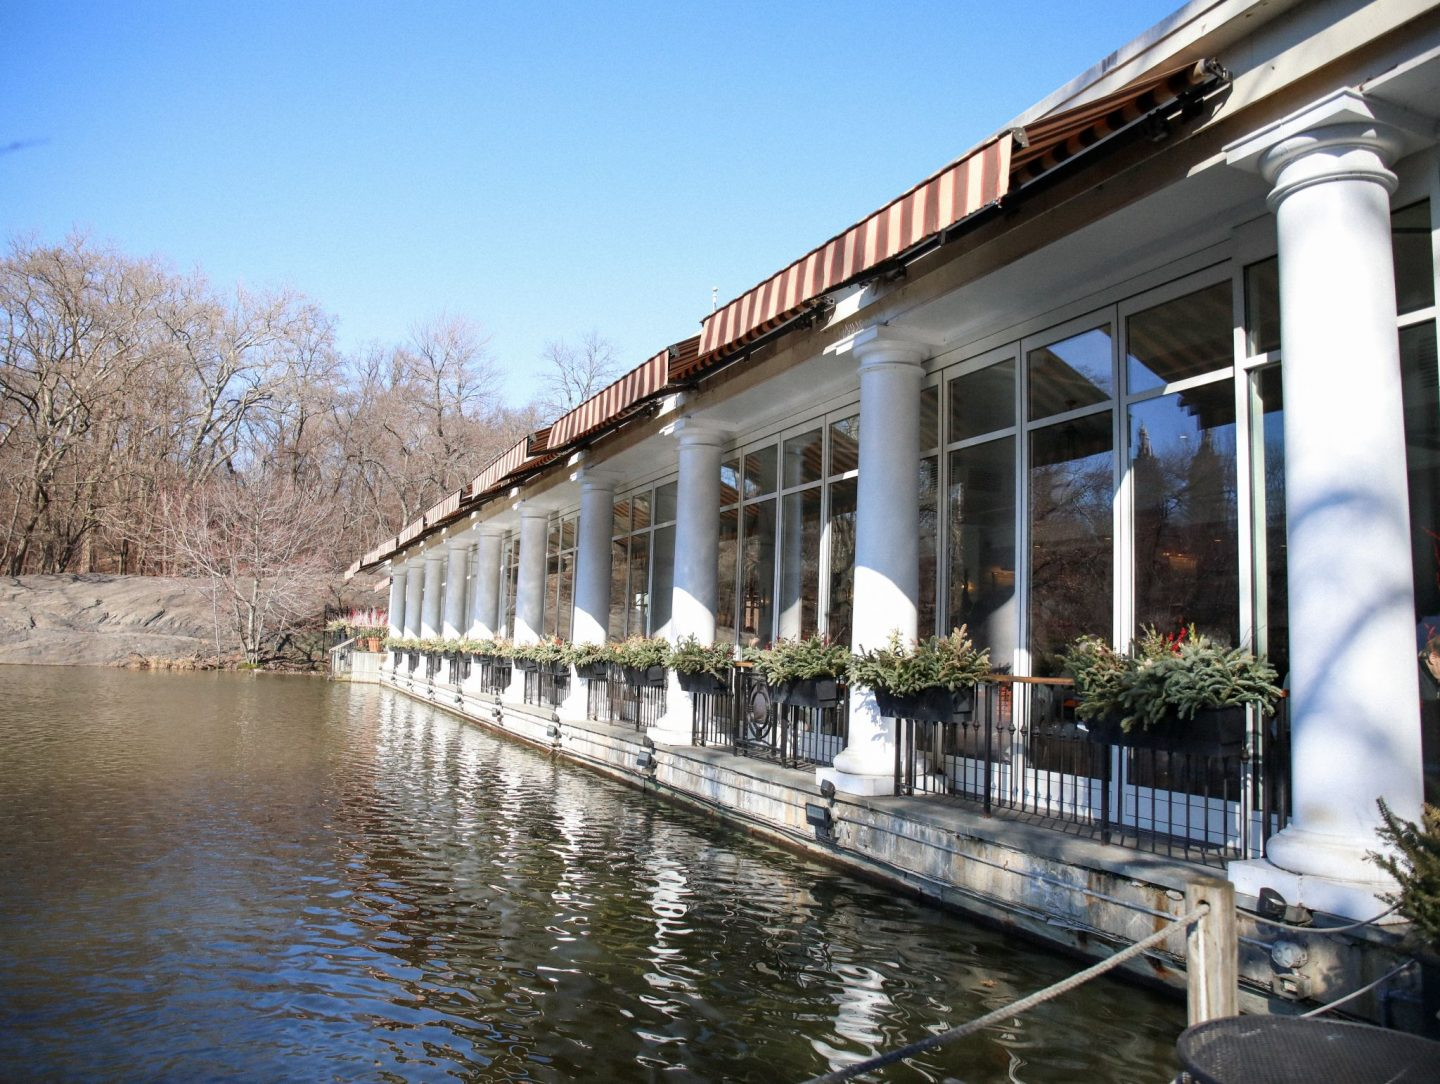 The Boat House, Central Park, New York, Katie Heath, KALANCHOE